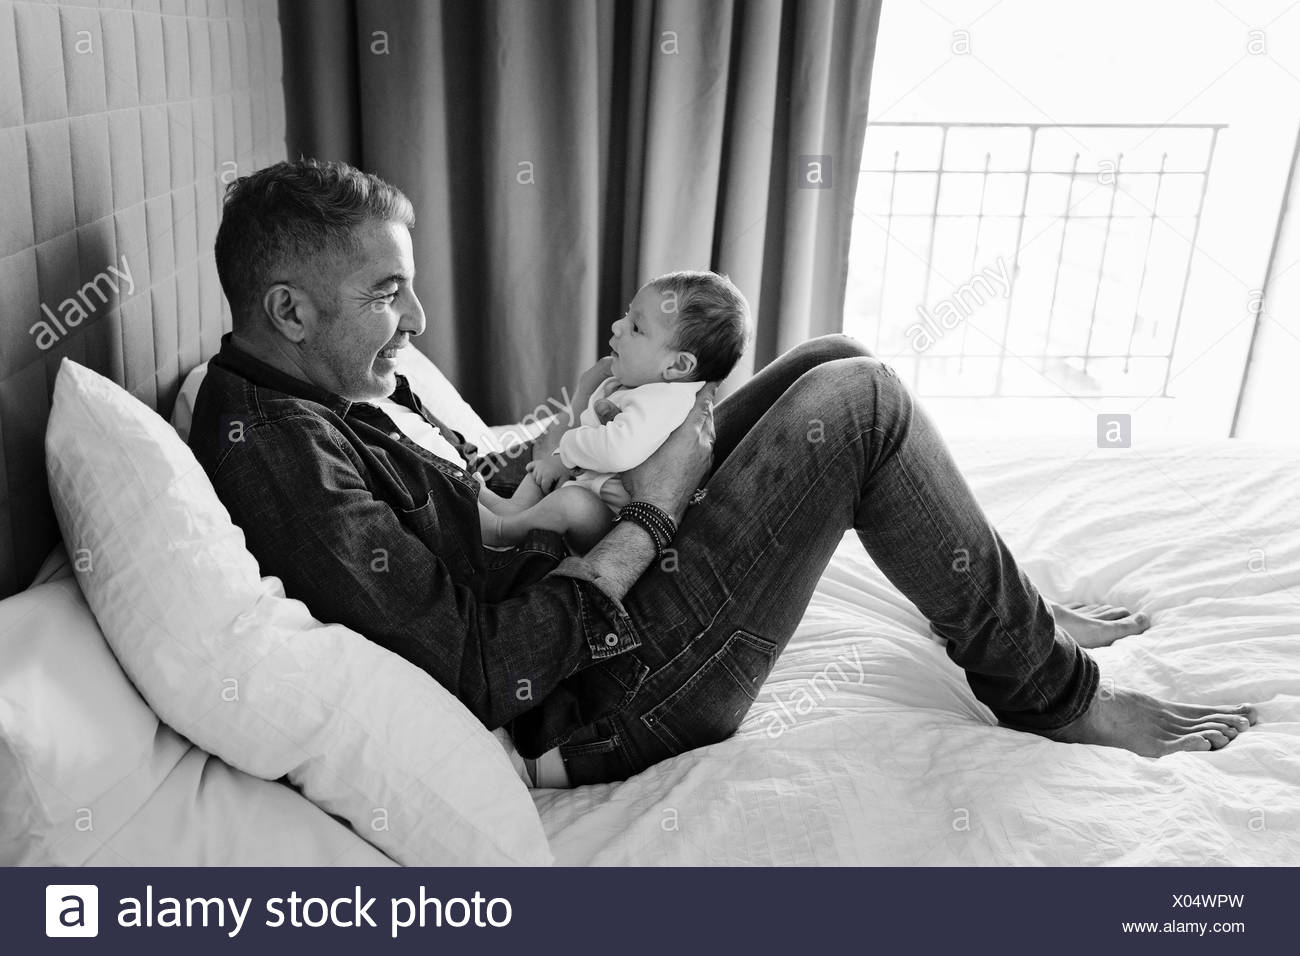 A father and his small baby gazing at each other, side view. - Stock Image